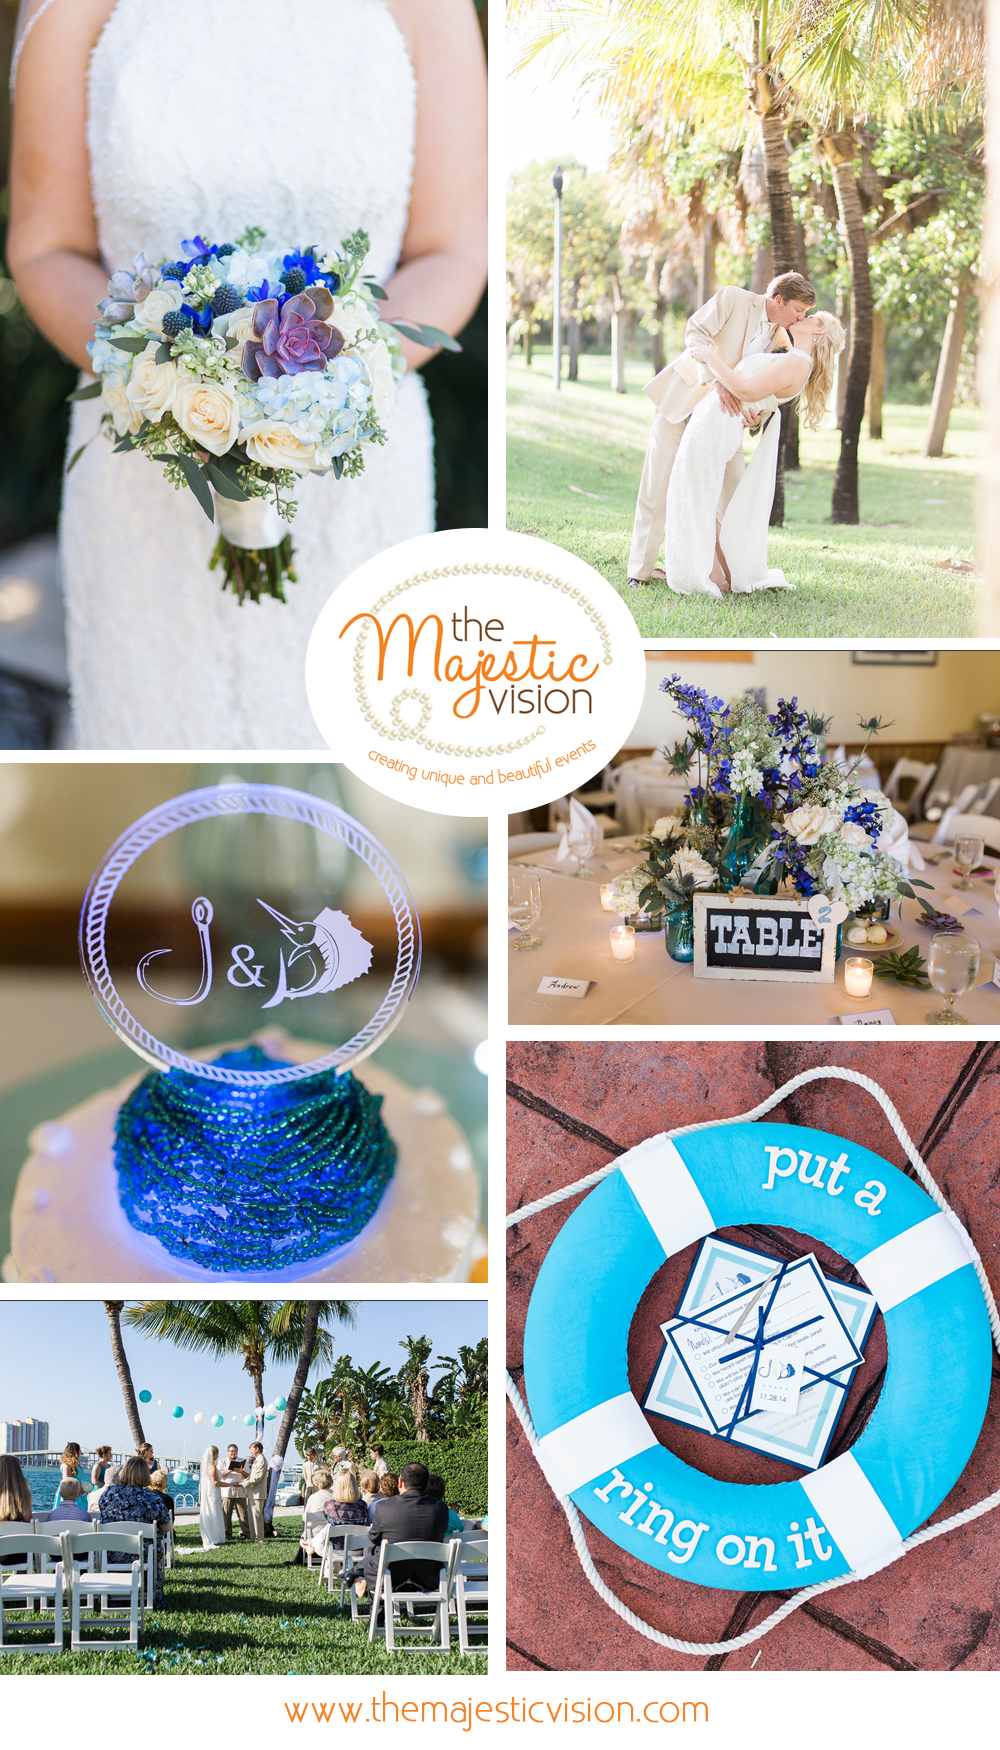 Elegant Shades of Blue Waterfront Wedding | The Majestic Vision Wedding Planning | Sailfish Marina in Palm Beach, FL | www.themajesticvision.com | Chris Kruger Photography